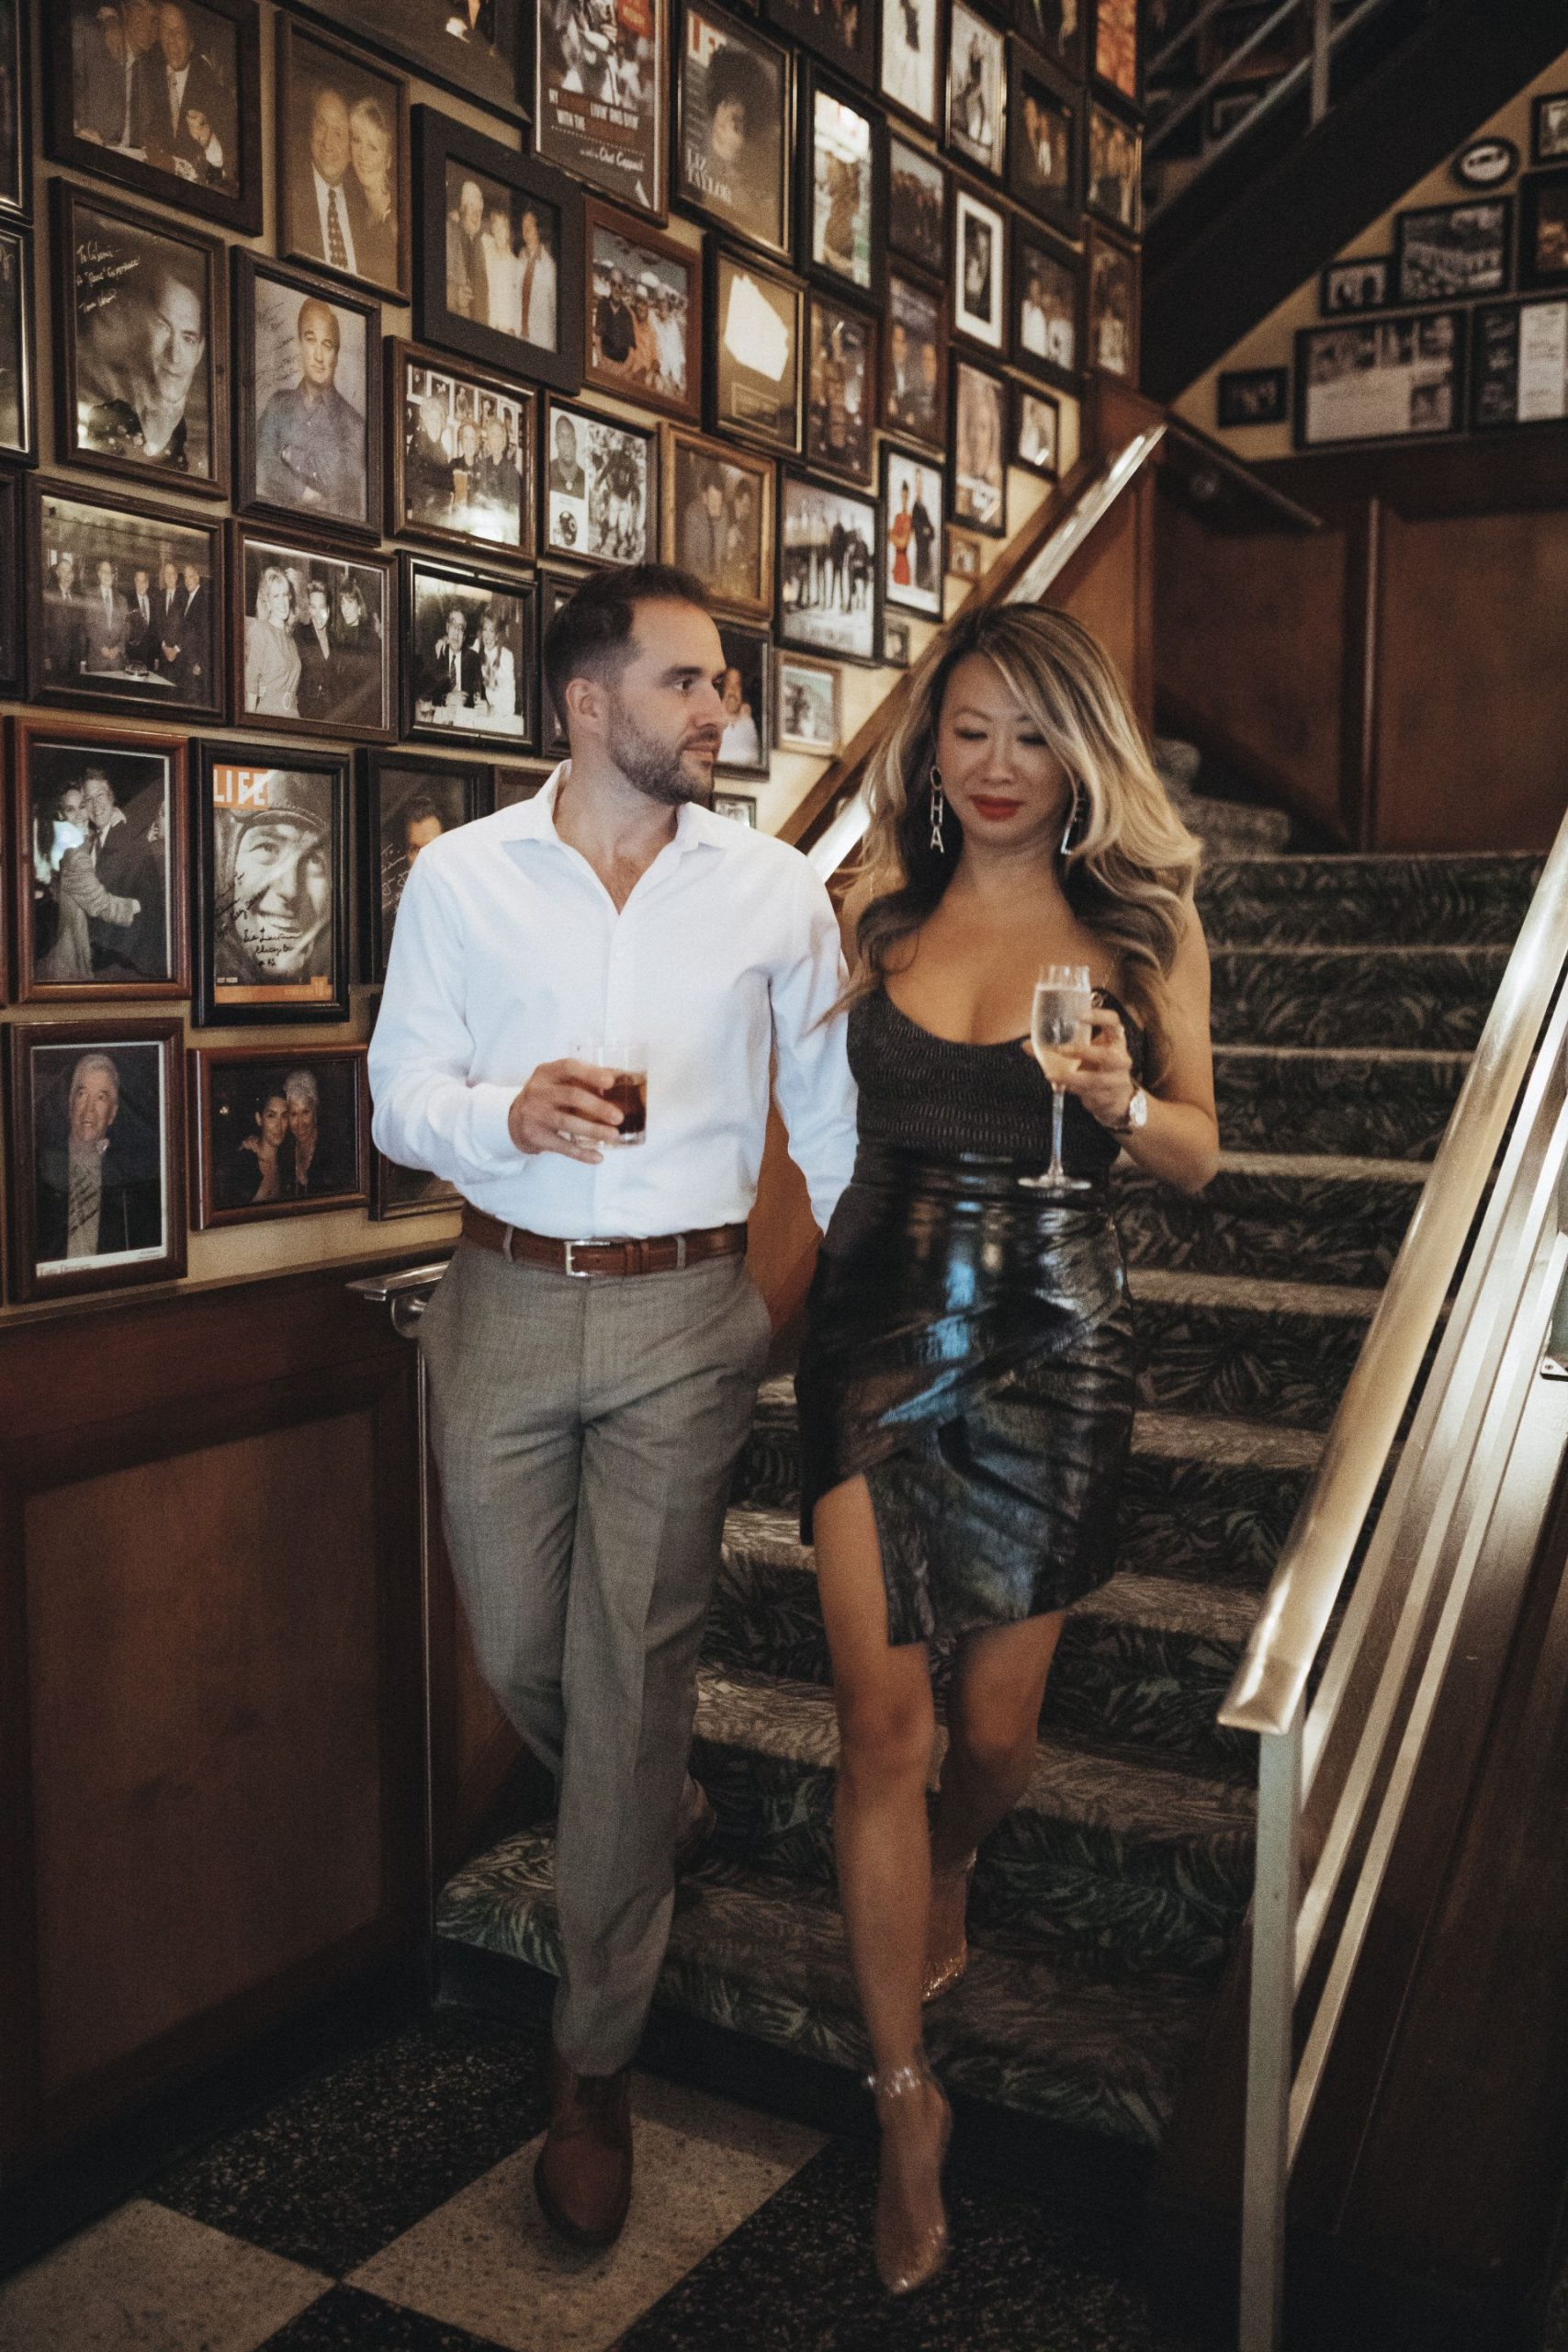 Gibsons Steakhouse, Best places to dine in Chicago, Chicago couple, Jennifer worman, red soles and red wine, chicago blogger,there will be a man that deserves you quote, dating after divorce, finding love after divorce, dating advice, top dating questions, dating during quarantine, chicago dating, dating life, dating series, dating blog, top questions about dating, real life dating stories, real talk, dating quotes, finding the one quotes, know your worth quotes, don't chase men quote, dating quote, finding love quote, dating after divorce quotes, single mom dating quotes, real life quotes, real talk